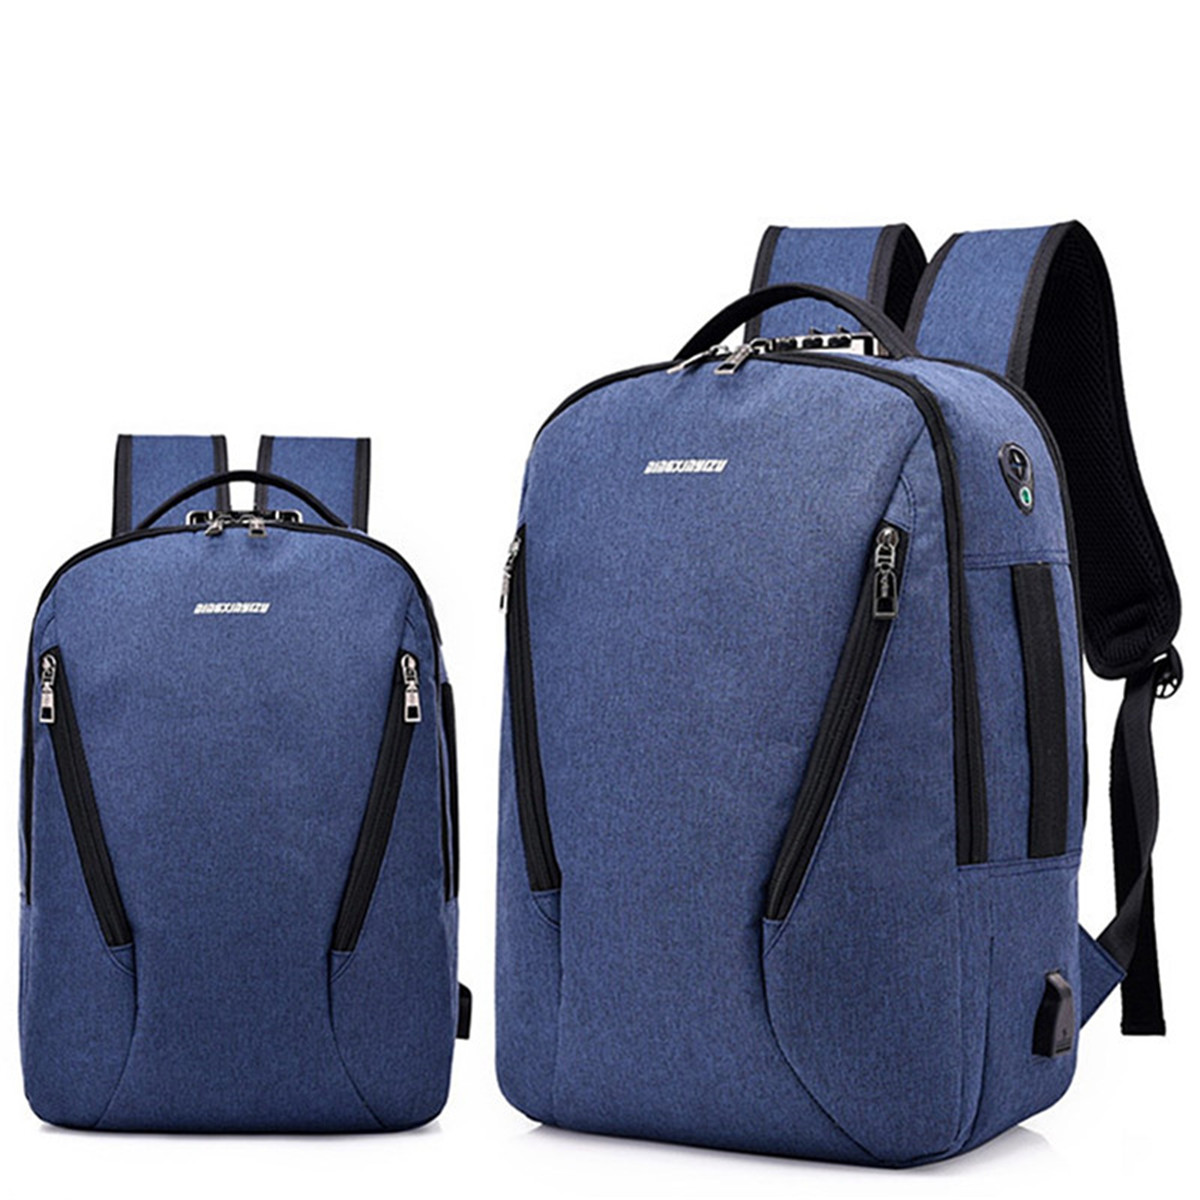 5009c491c123 Men Women Laptop Backpack School Travel Shoulder Bag With USB Charge ...